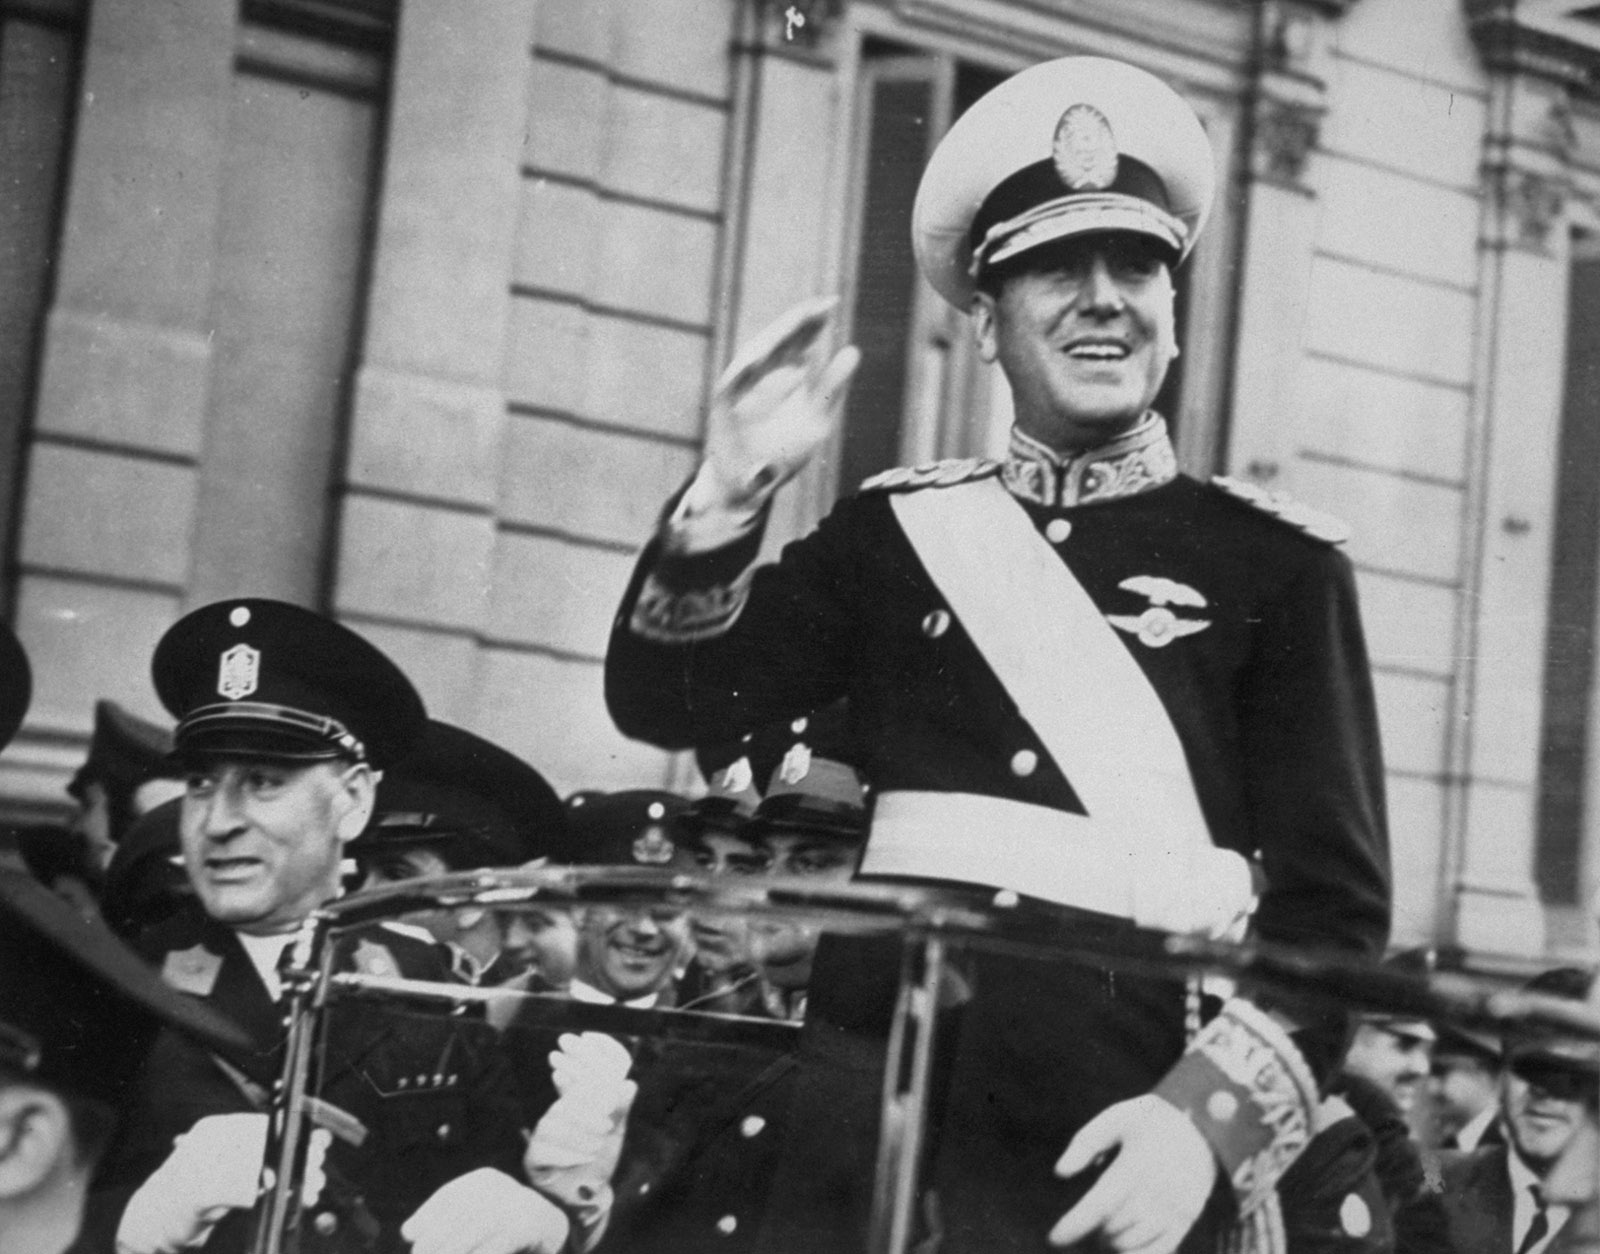 Juan Domingo Perón on the way to his inauguration as president of Argentina